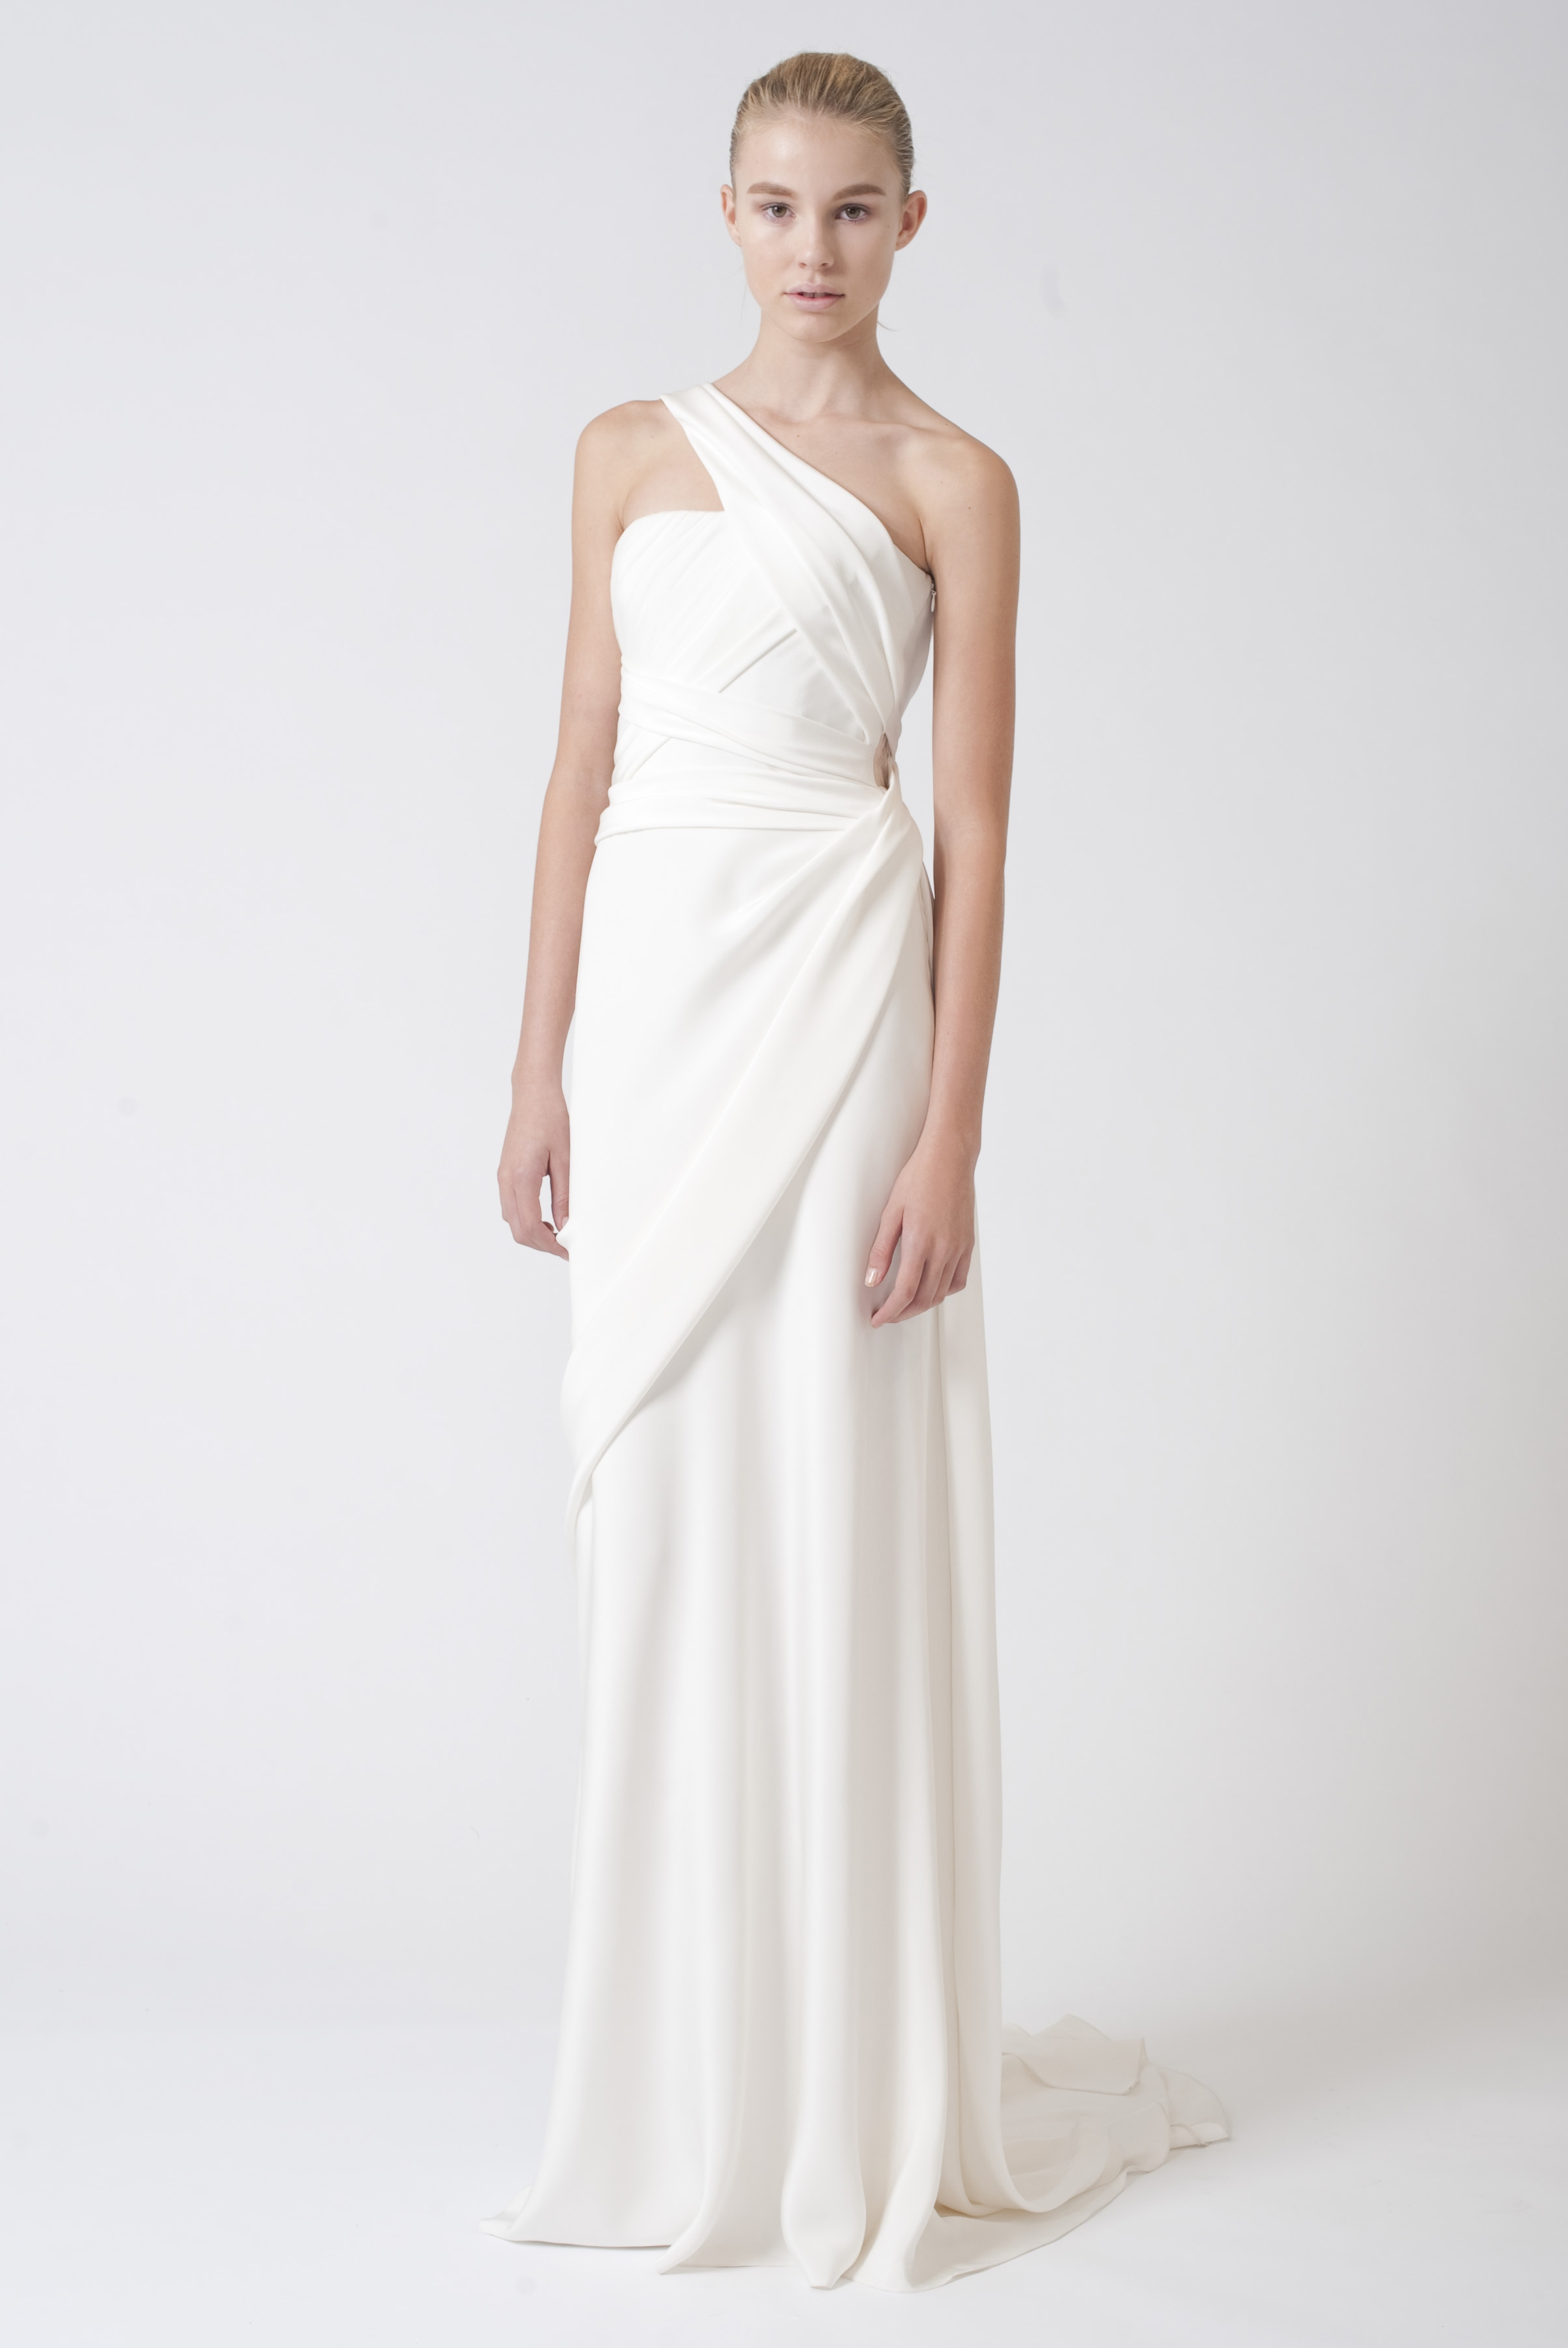 Vera-wang-wedding-dresses-fall-2010-11.original